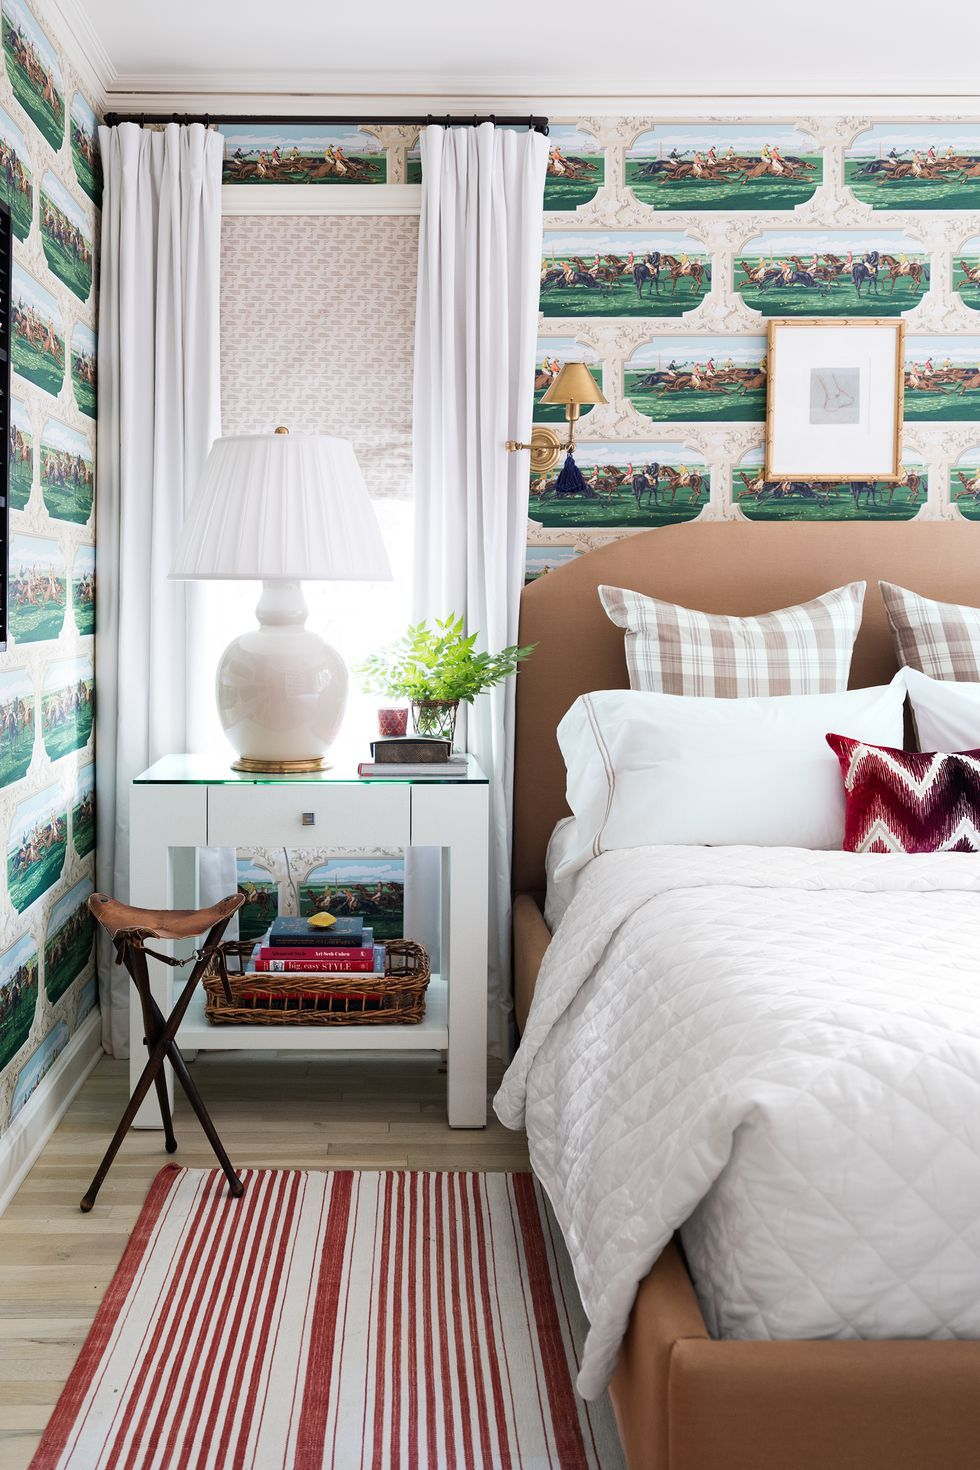 30 Small Bedroom Design Ideas - How to Decorate a Small ... on Bedroom Ideas For Small Spaces  id=65735